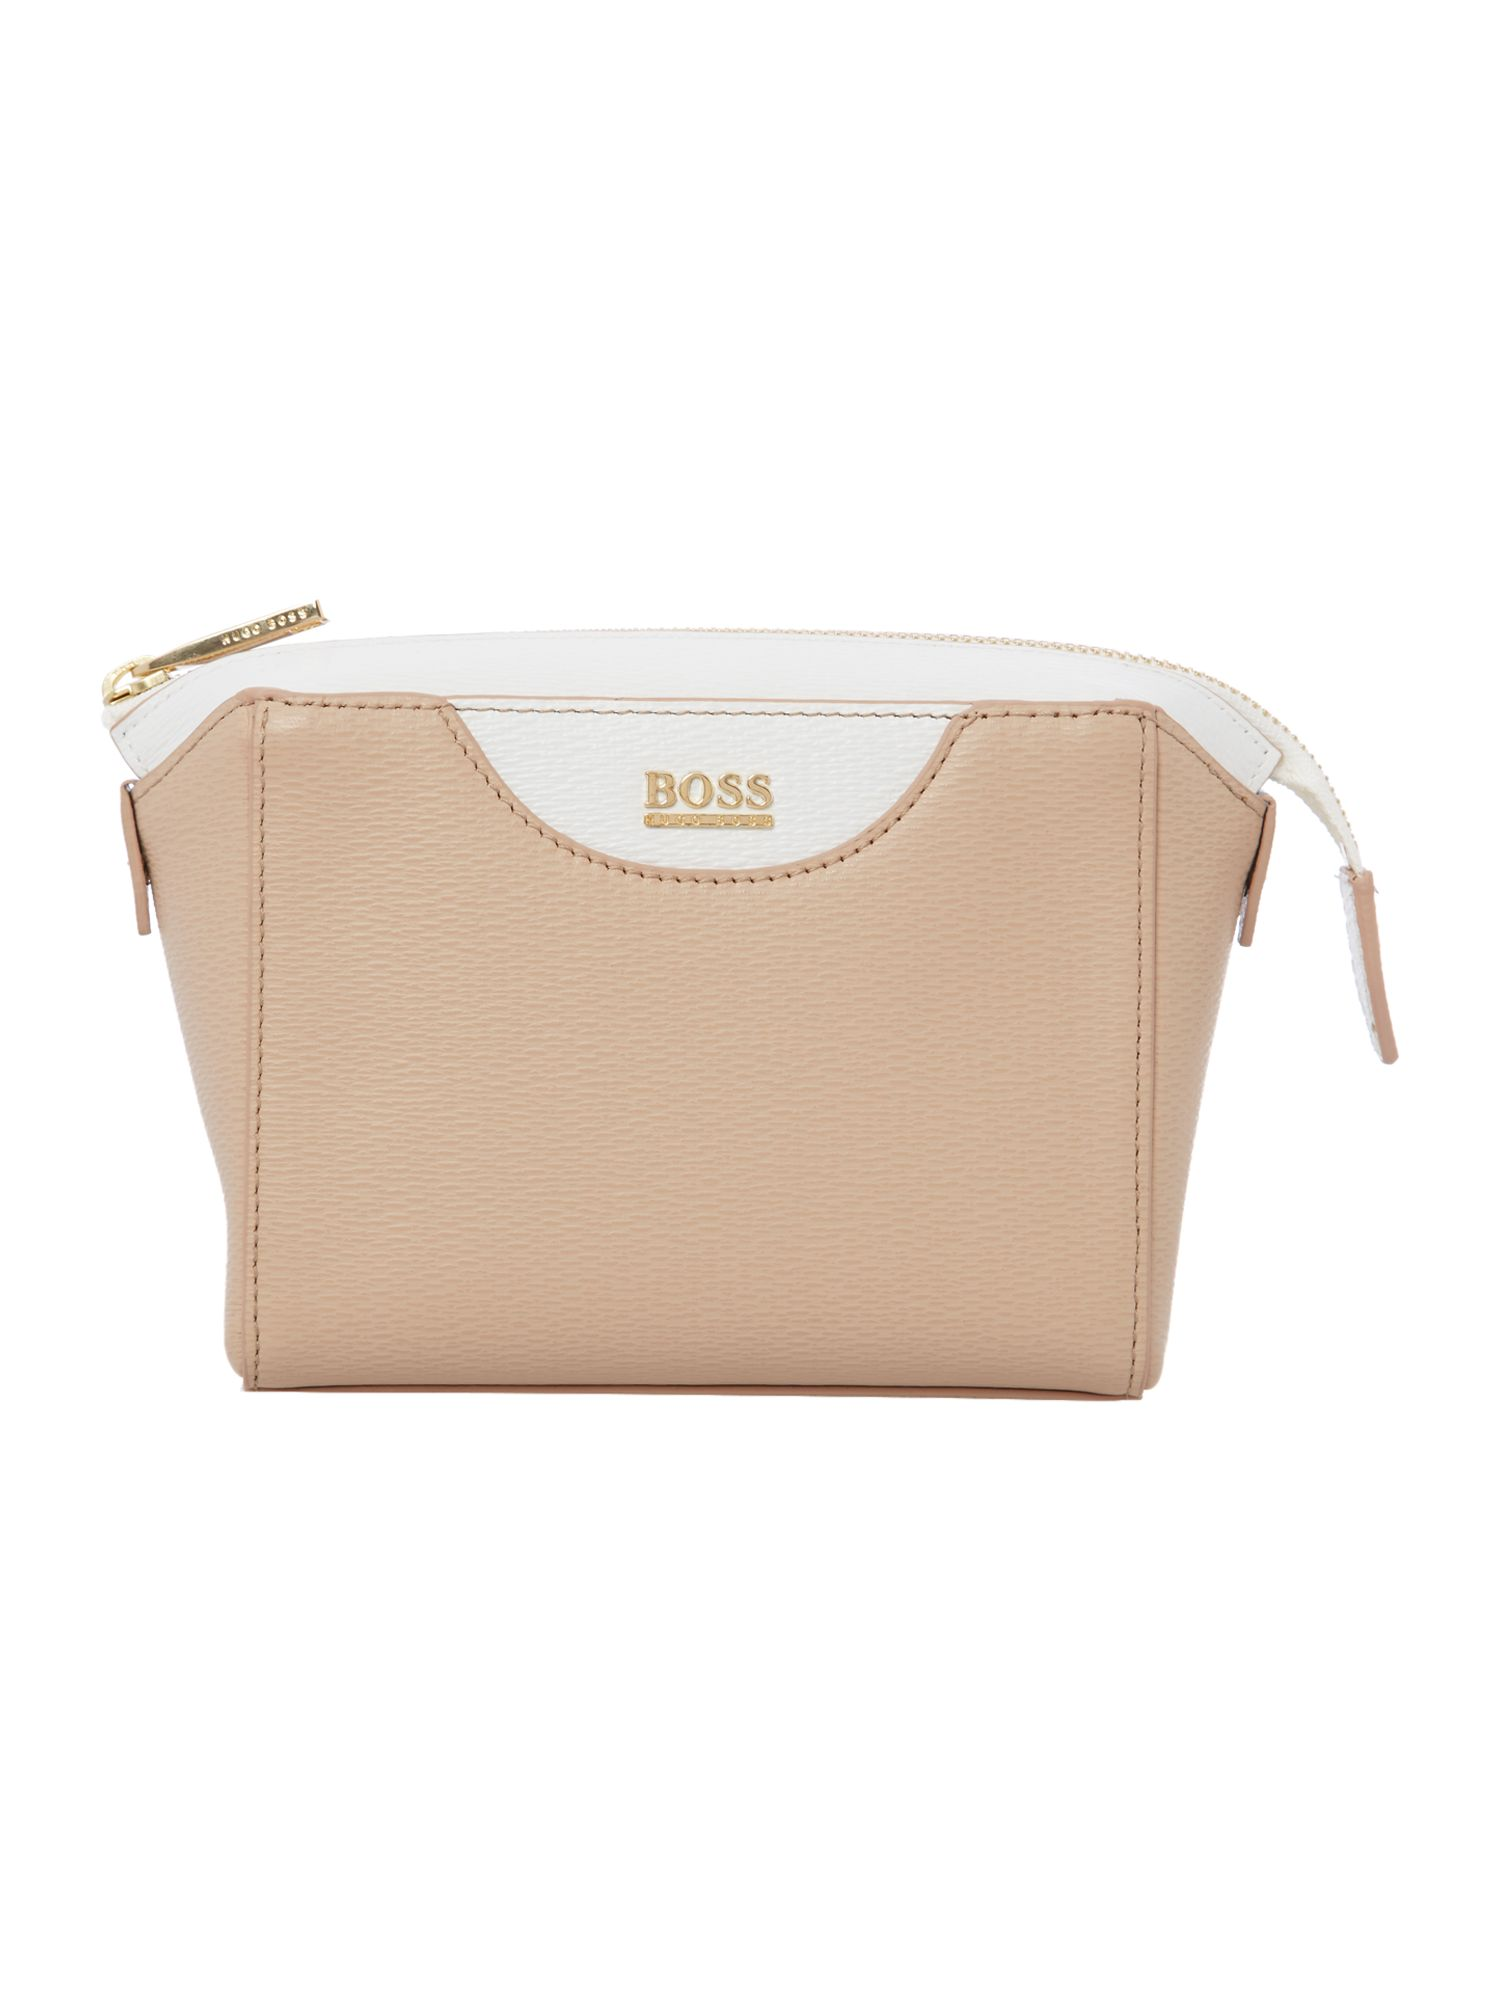 Mosdy neutral cosmetic bag